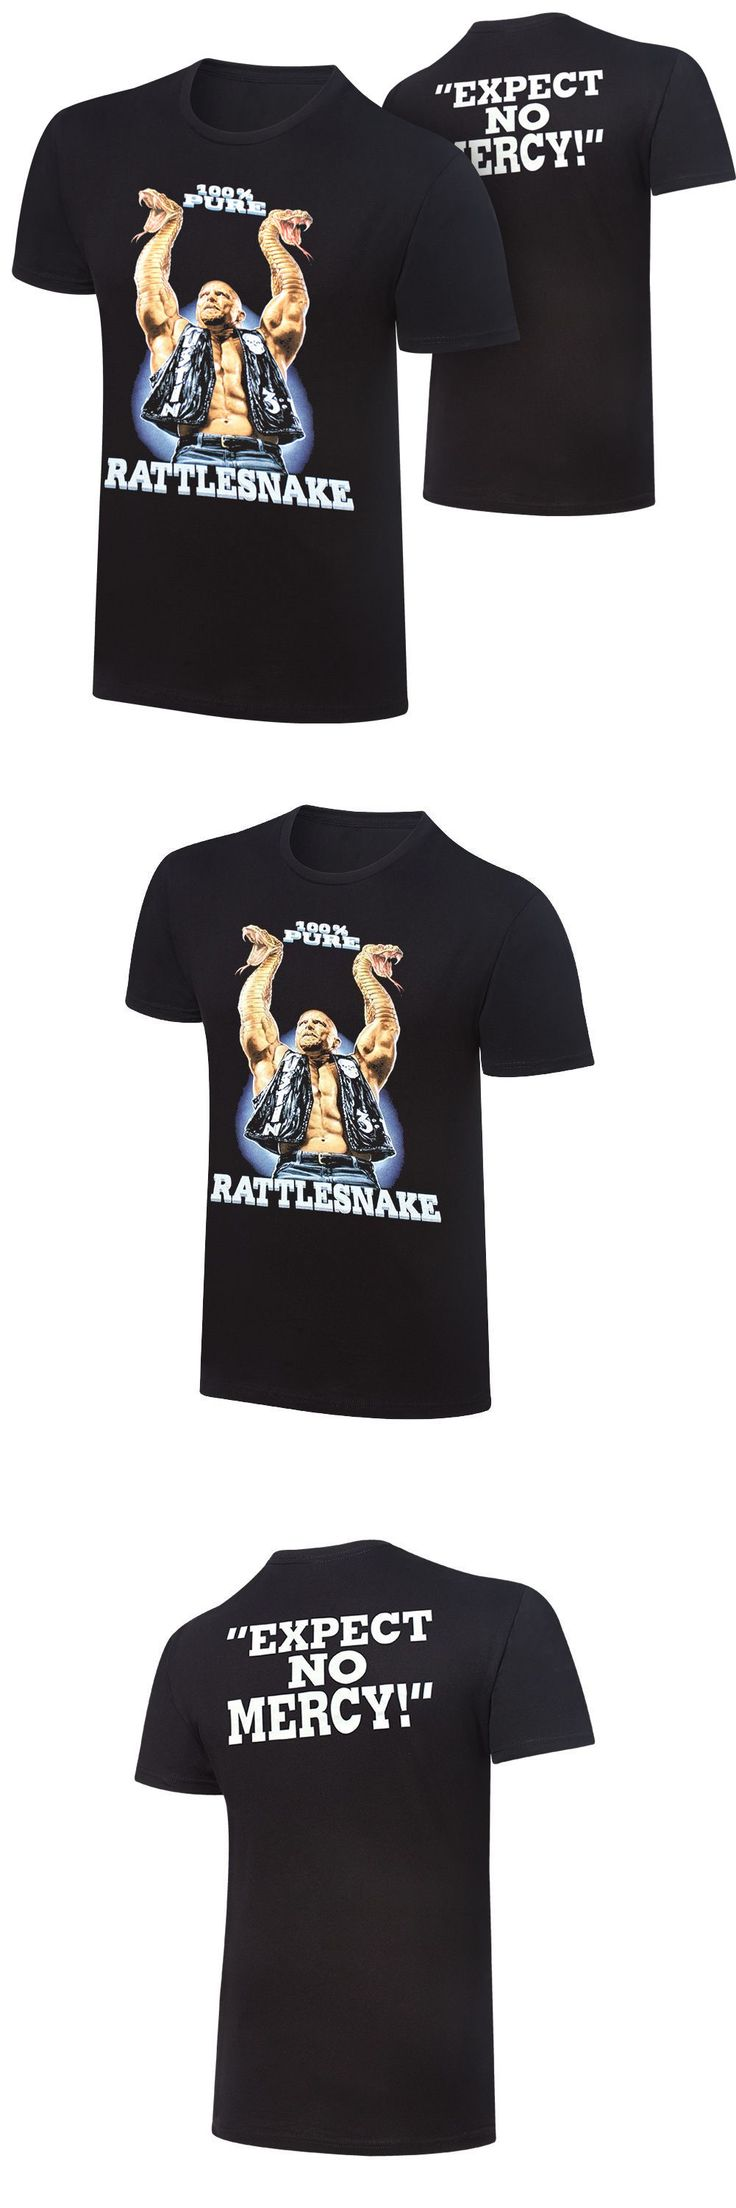 Wrestling 2902: Stone Cold Steve Austin 100% Pure Rattlesnake Wwe Authentic Mens T-Shirt -> BUY IT NOW ONLY: $34.99 on eBay!